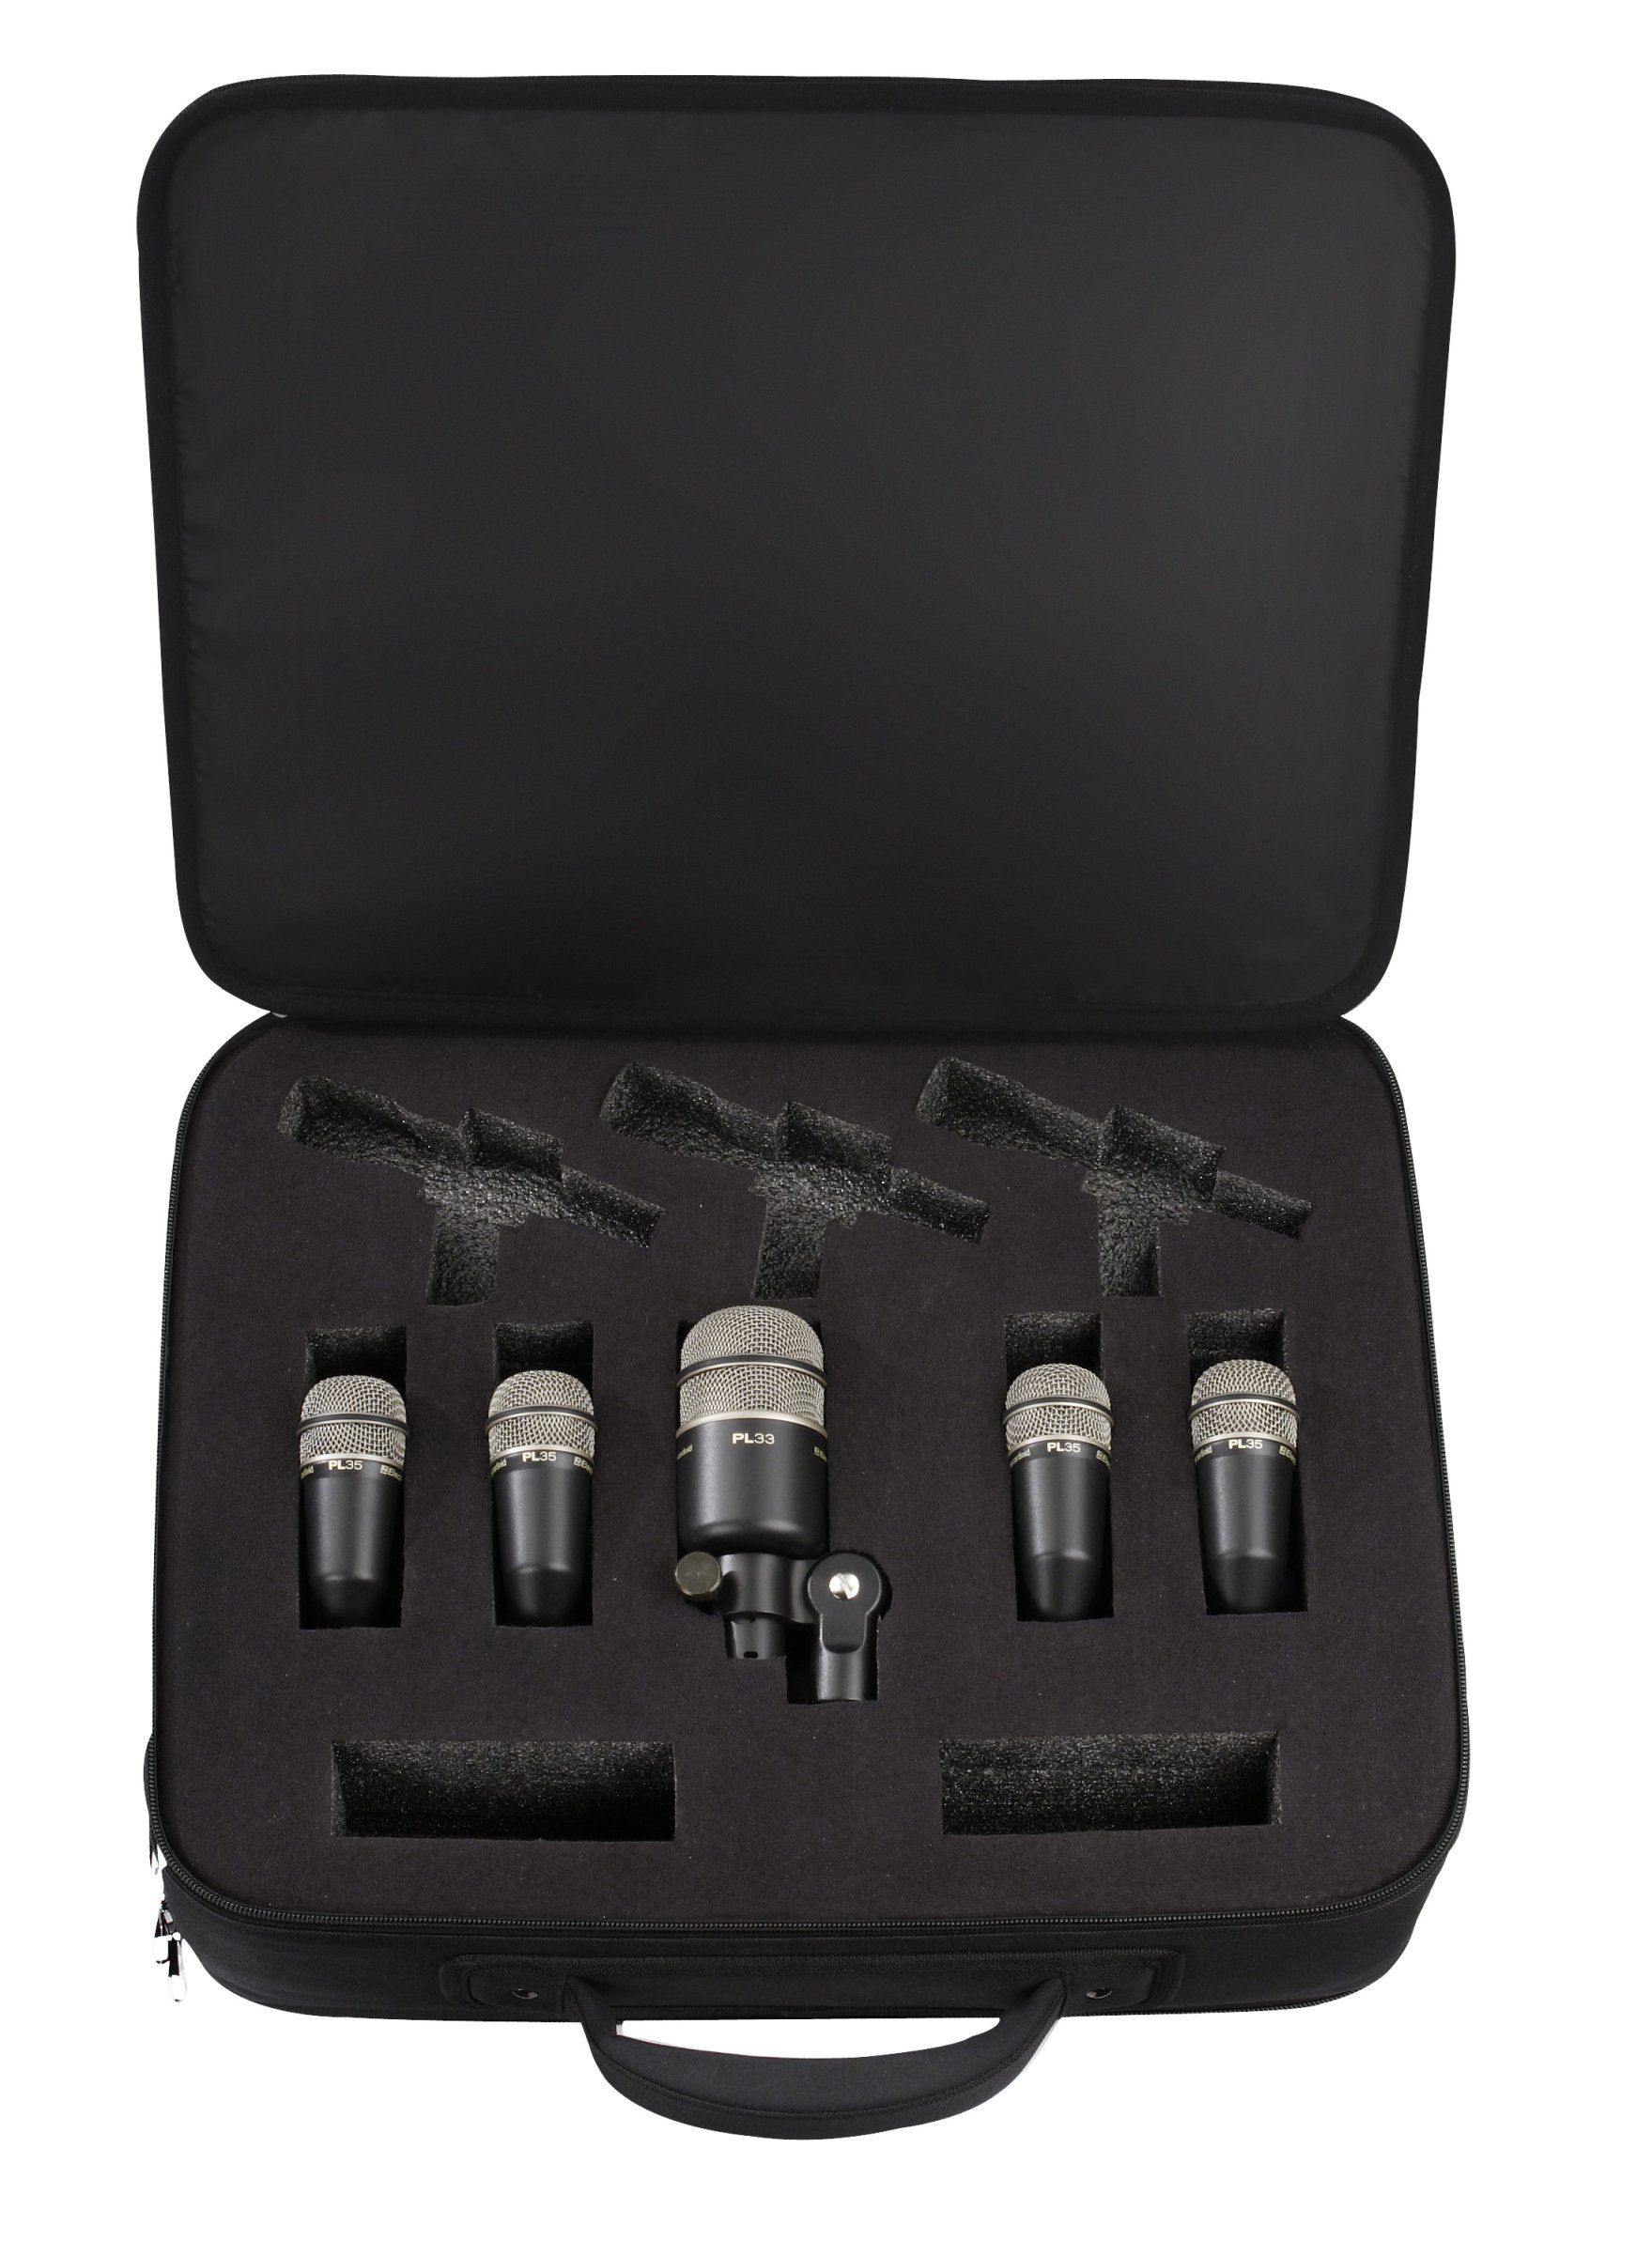 Electro Voice Pl Series Drum Mic Kit 1 Pl33 Kick Drum Mic And 4 Pl35 Snare Tom Mics Music Gear Drums Microphones